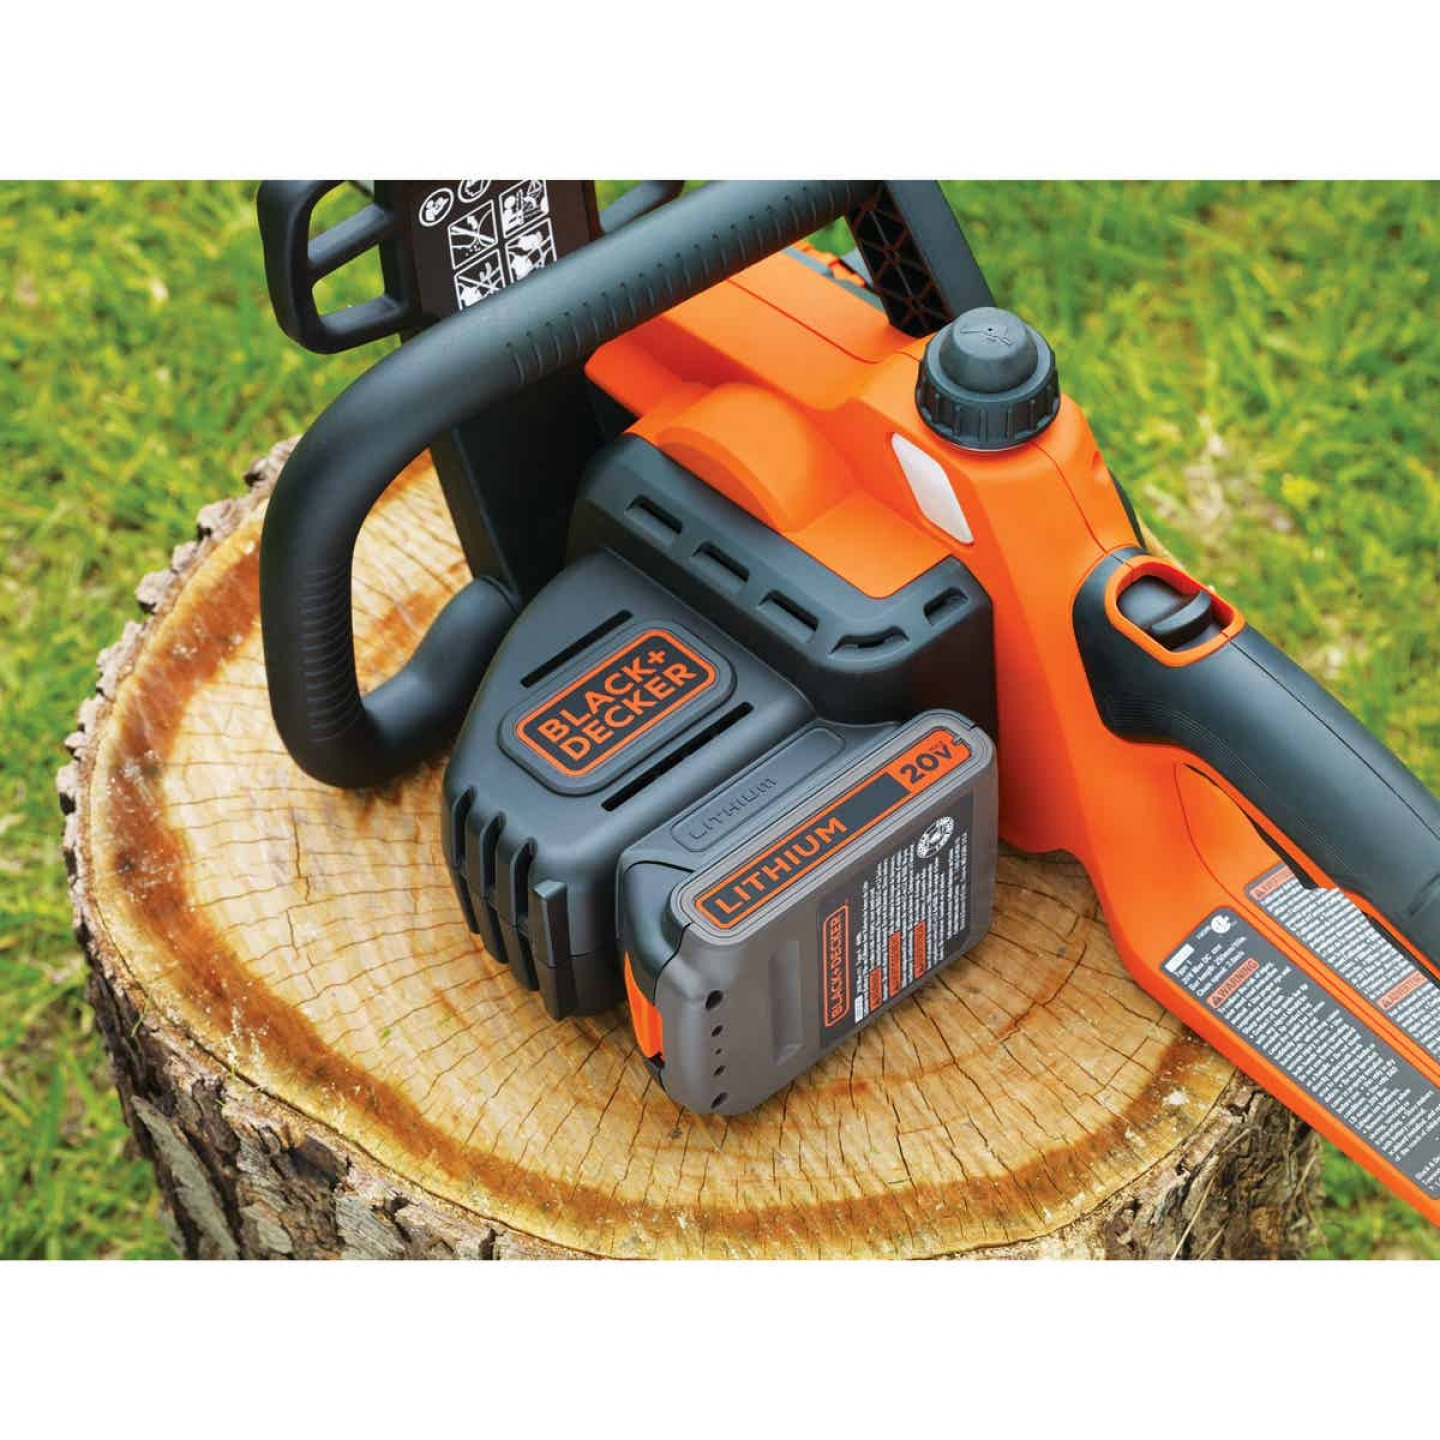 Black & Decker 10 In. 20V MAX Lithium Ion Cordless Chainsaw Image 5